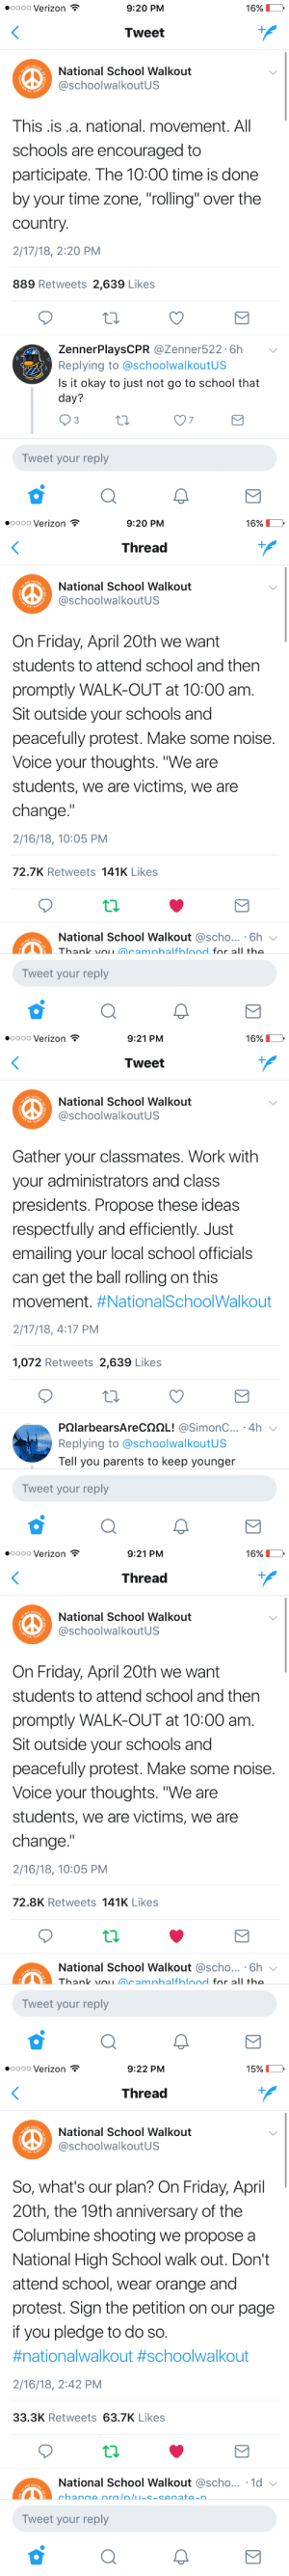 """highfemscience: More info on the school walkout! Spread the word and please participate if you can! [set of tweets from the National School Walkout on twitter reading; """"This .is .a. national. movement. All schools are encouraged to participate. The 10:00 time is done by your time zone, """"rolling"""" over the country. Gather your classmates. Work with your administrators and class presidents. Propose these ideas respectfully and efficiently. Just emailing your local school officials can get the ball rolling on this movement. #NationalSchoolWalkout On Friday, April 20th we want students to attend school and then promptly WALK-OUT at 10:00 am. Sit outside your schools and peacefully protest. Make some noise. Voice your thoughts. """"We are students, we are victims, we are change."""" So, what's our plan? On Friday, April 20th, the 19th anniversary of the Columbine shooting we propose a National High School walk out. Don't attend school, wear orange and protest. Sign the petition on our page if you pledge to do so. #nationalwalkout #schoolwalkout""""]: oooo Verizon  9:20 PM  16% 1  Tweet  National School Walkout  schoolwalkoutUS  This is.a. national. movement. All  schools are encouraged to  participate. The 10:00 time is done  by your time zone, """"rolling"""" over the  country  2/17/18, 2:20 PM  889 Retweets 2,639 Likes  ZennerPlaysCPR @Zenner522.6hv  Replying to @schoolwalkoutUS  Is it okay to just not go to school that  day?  7  Tweet your reply   oooo Verizon  9:20 PM  16%D  Thread  National School Walkout  SchoolwalkoutUS  On Friday, April 20th we want  students to attend school and then  promptly WALK-OUT at 10:00 am.  Sit outside your schools and  peacefully protest. Make some noise.  Voice your thoughts. """"We are  students, we are victims, we are  change.""""  2/16/18, 10:05 PM  72.7K Retweets 141K Likes  National School Walkout @scho... 6h  Tweet your reply   oooo Verizon  9:21 PM  16% D  Tweet  National School Walkout  SchoolwalkoutUS  Gather your classmates. Work with  your admin"""